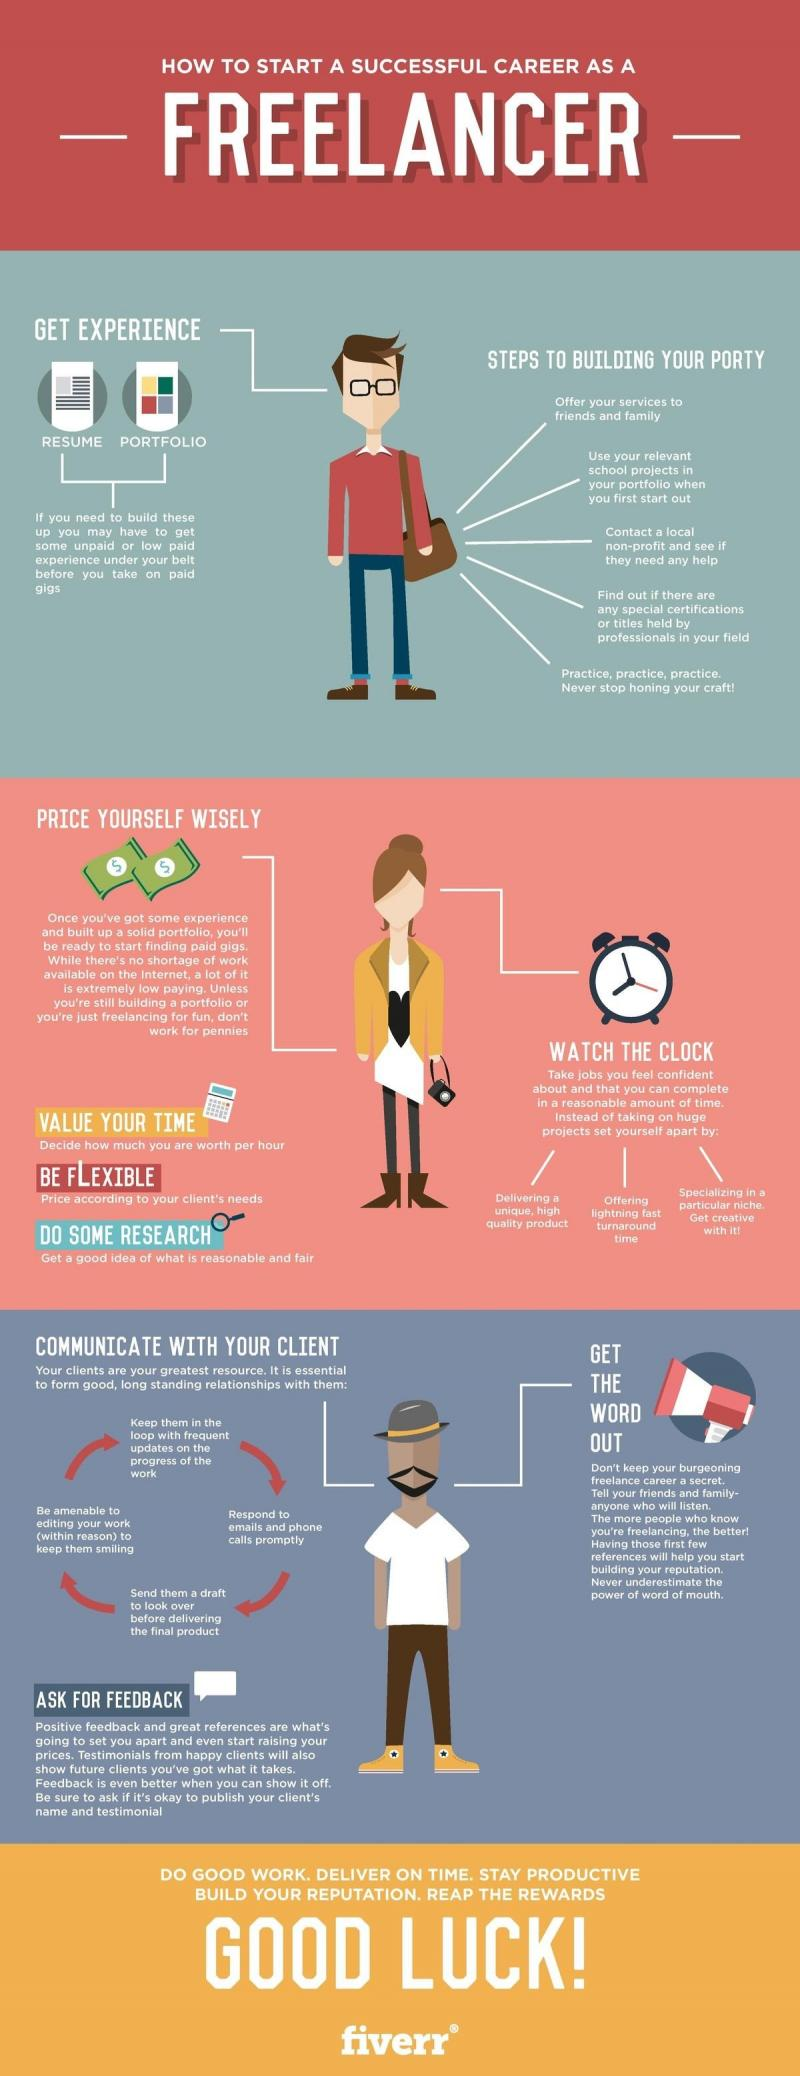 How to succeed a #Freelancer #fiverr #Infographic